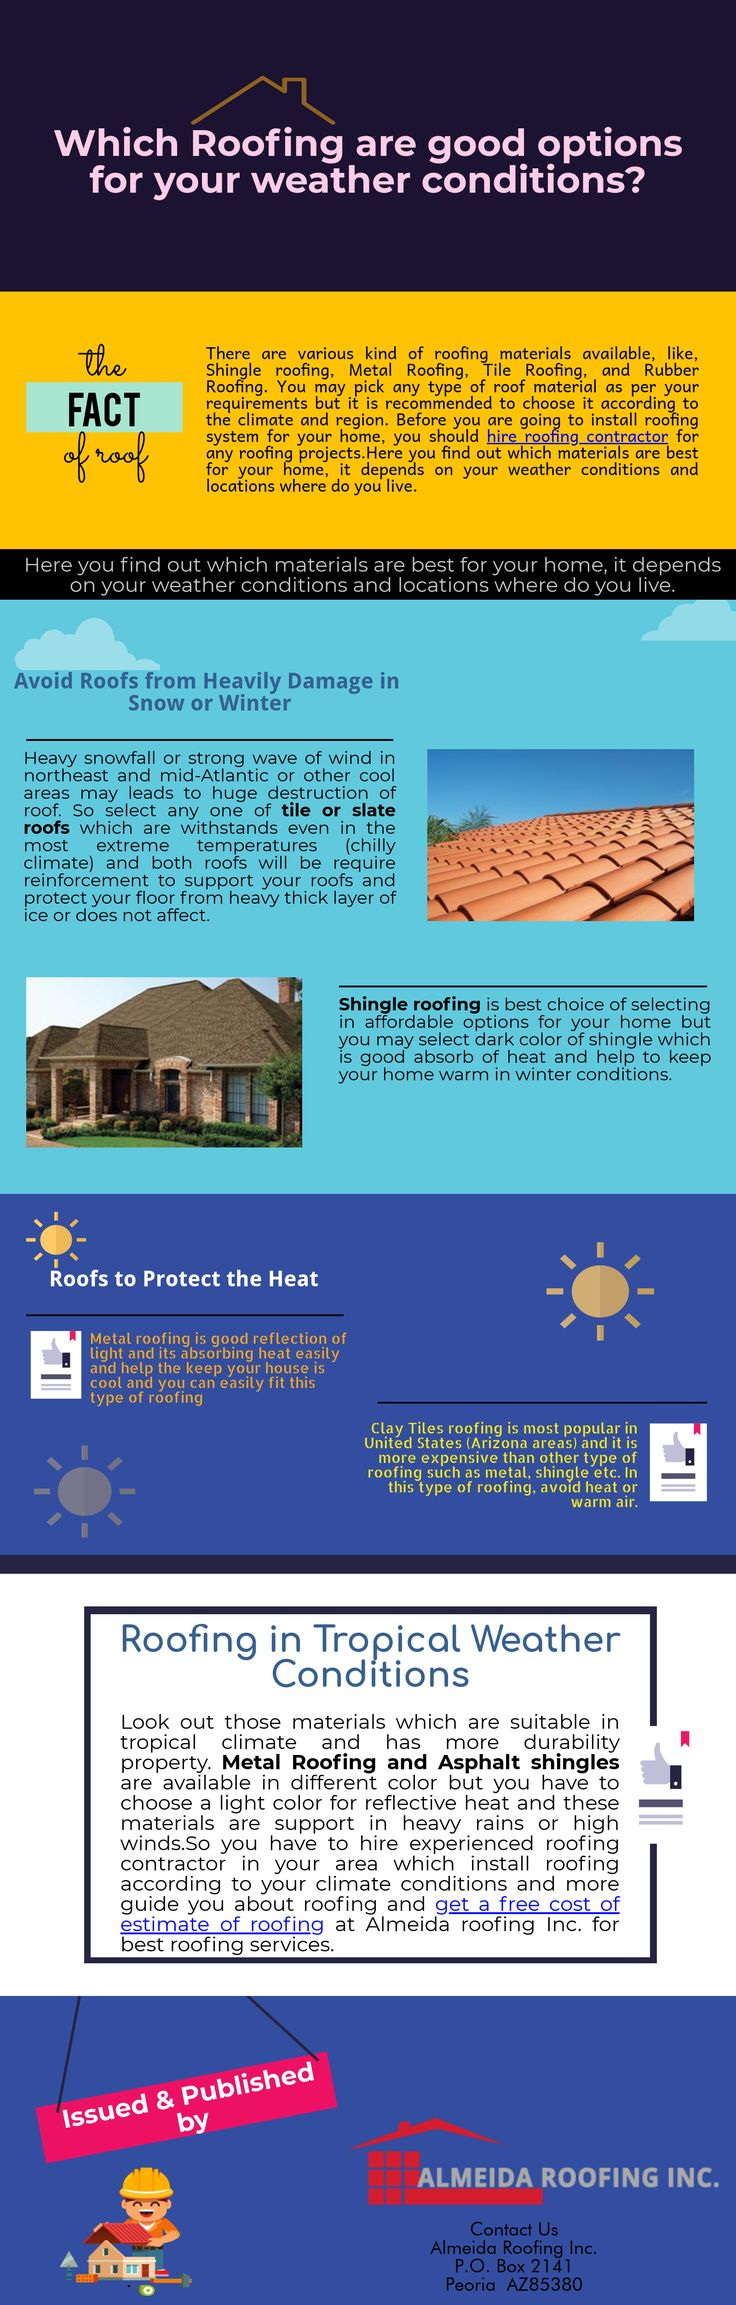 Almeida roofing inc almeidaroofingi on pinterest